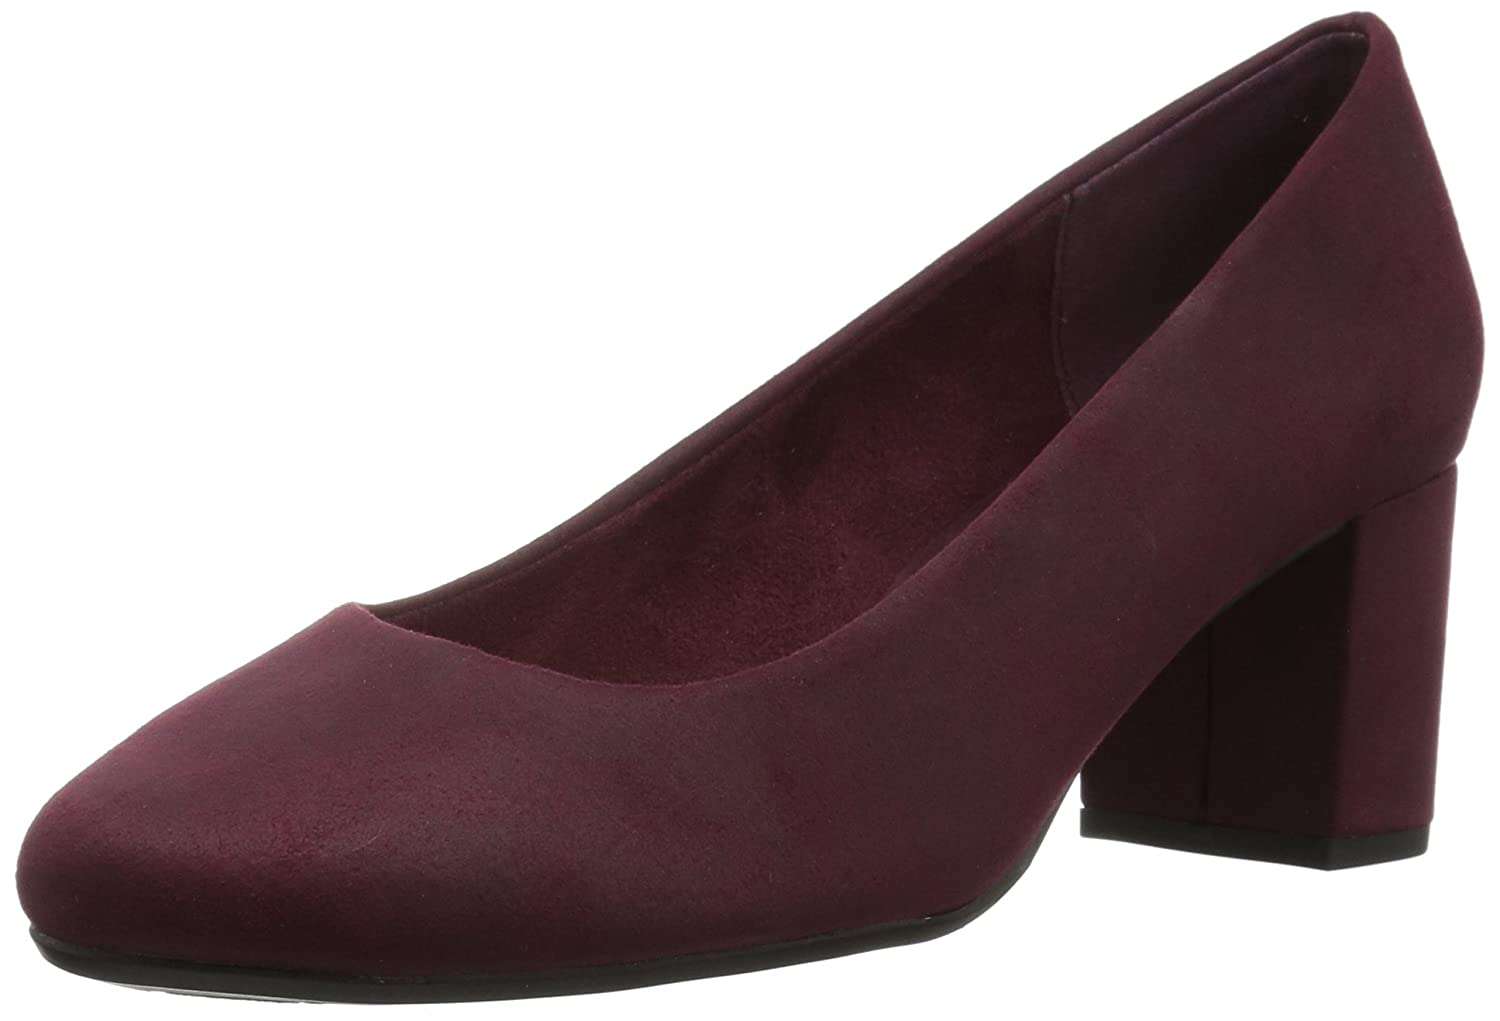 Easy Street Women's Proper Dress Pump B071ZMV2HZ 10 2W US|Burgundy Super Suede